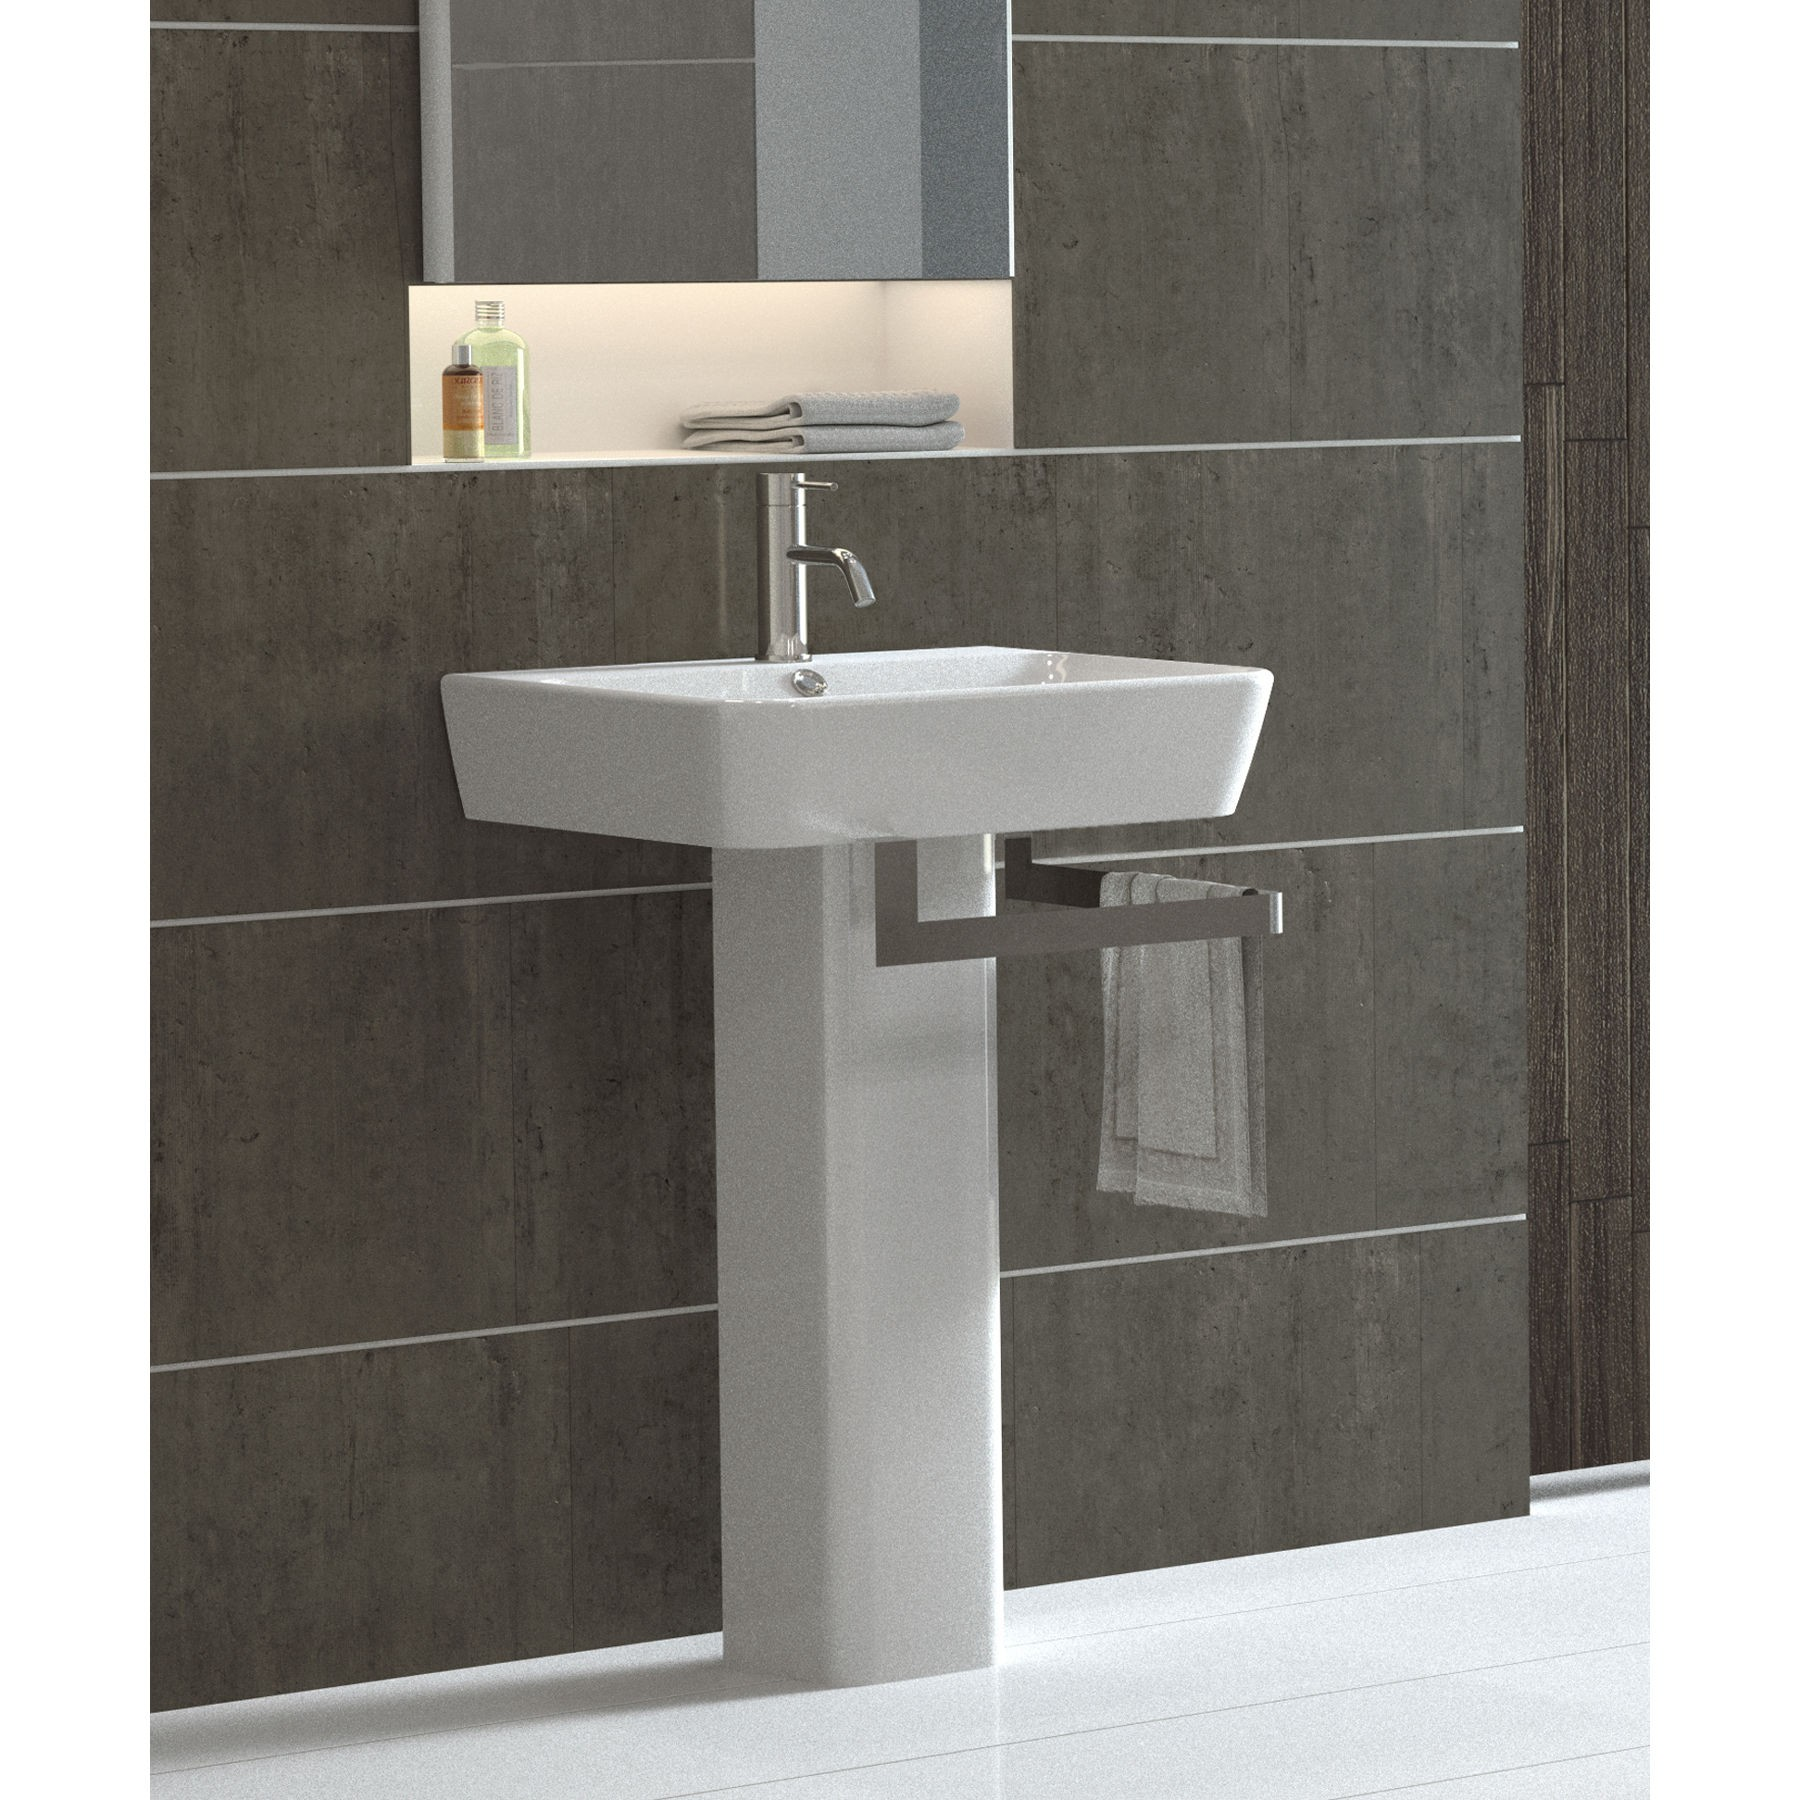 modern pedestal sink with towel bar homesfeed. Black Bedroom Furniture Sets. Home Design Ideas